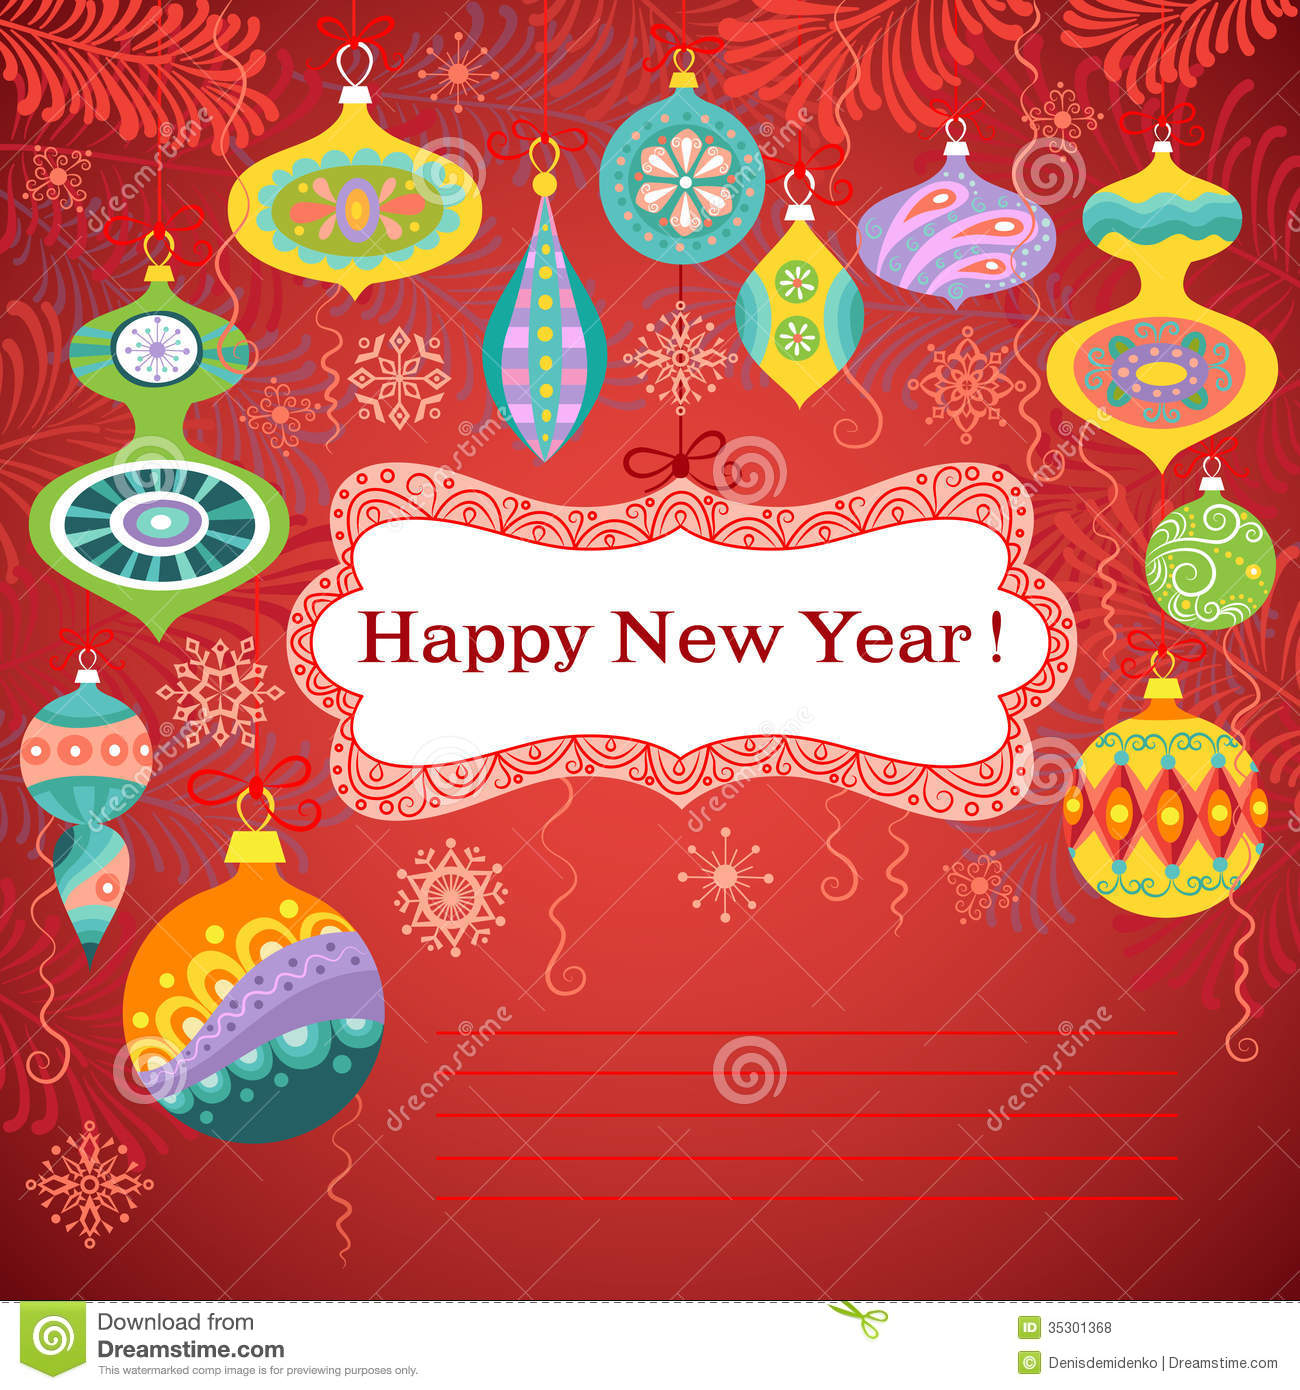 Happy New Year card stock vector. Illustration of frame ...